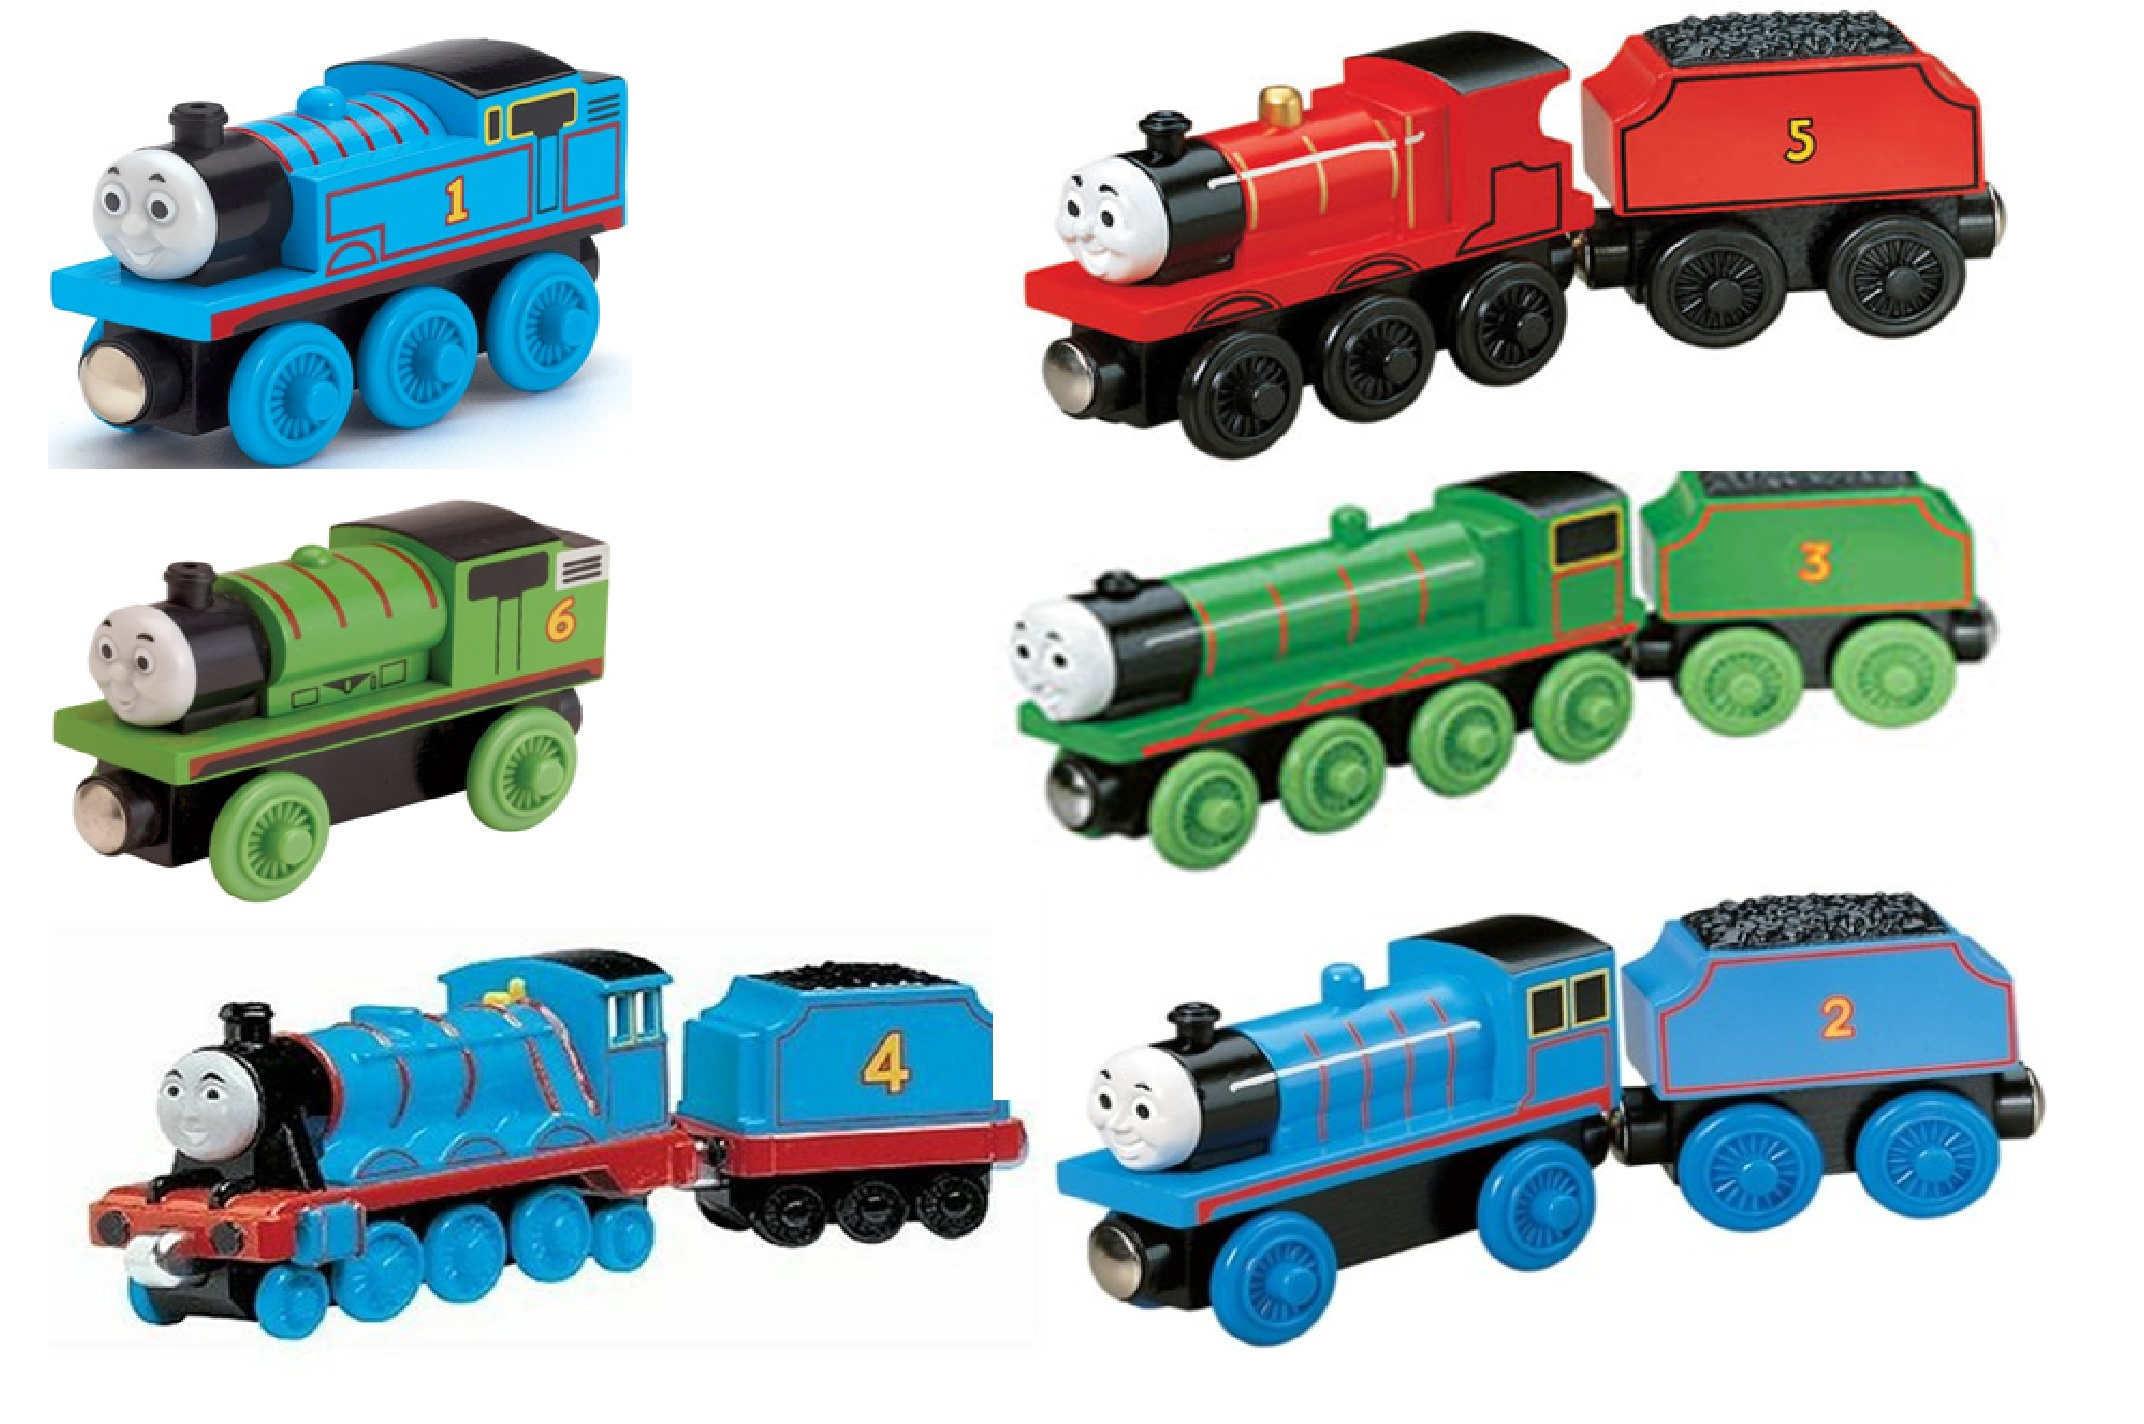 Best Thomas And Friends Toys And Trains : Thomas train toys